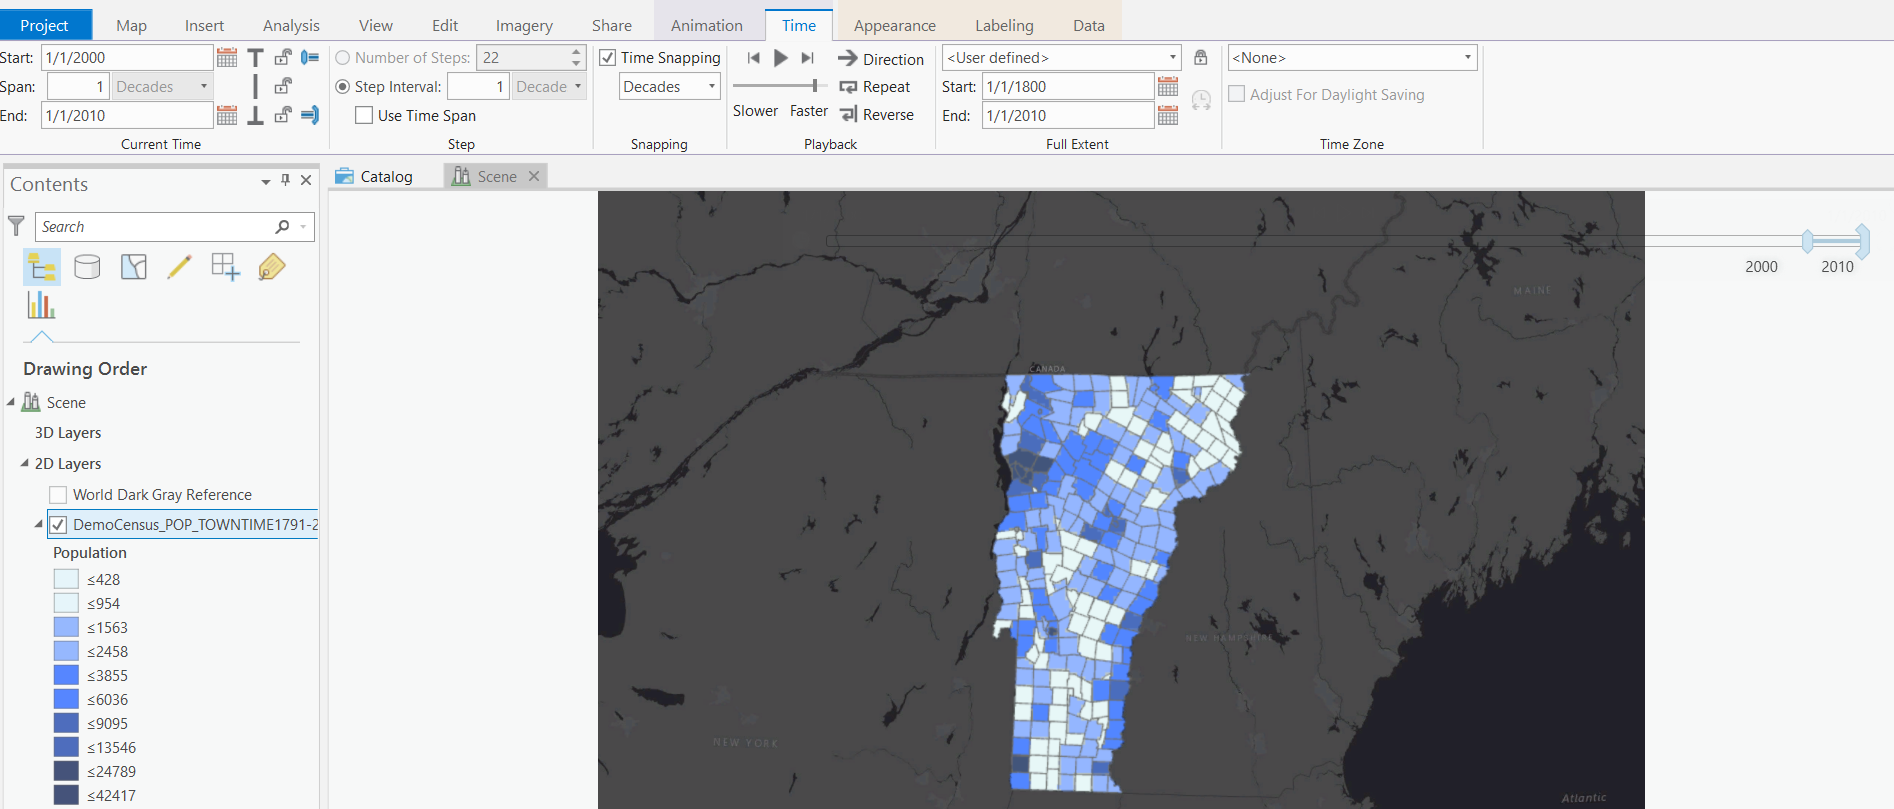 Dealing with Time in Geospatial Data - Vermont Center for